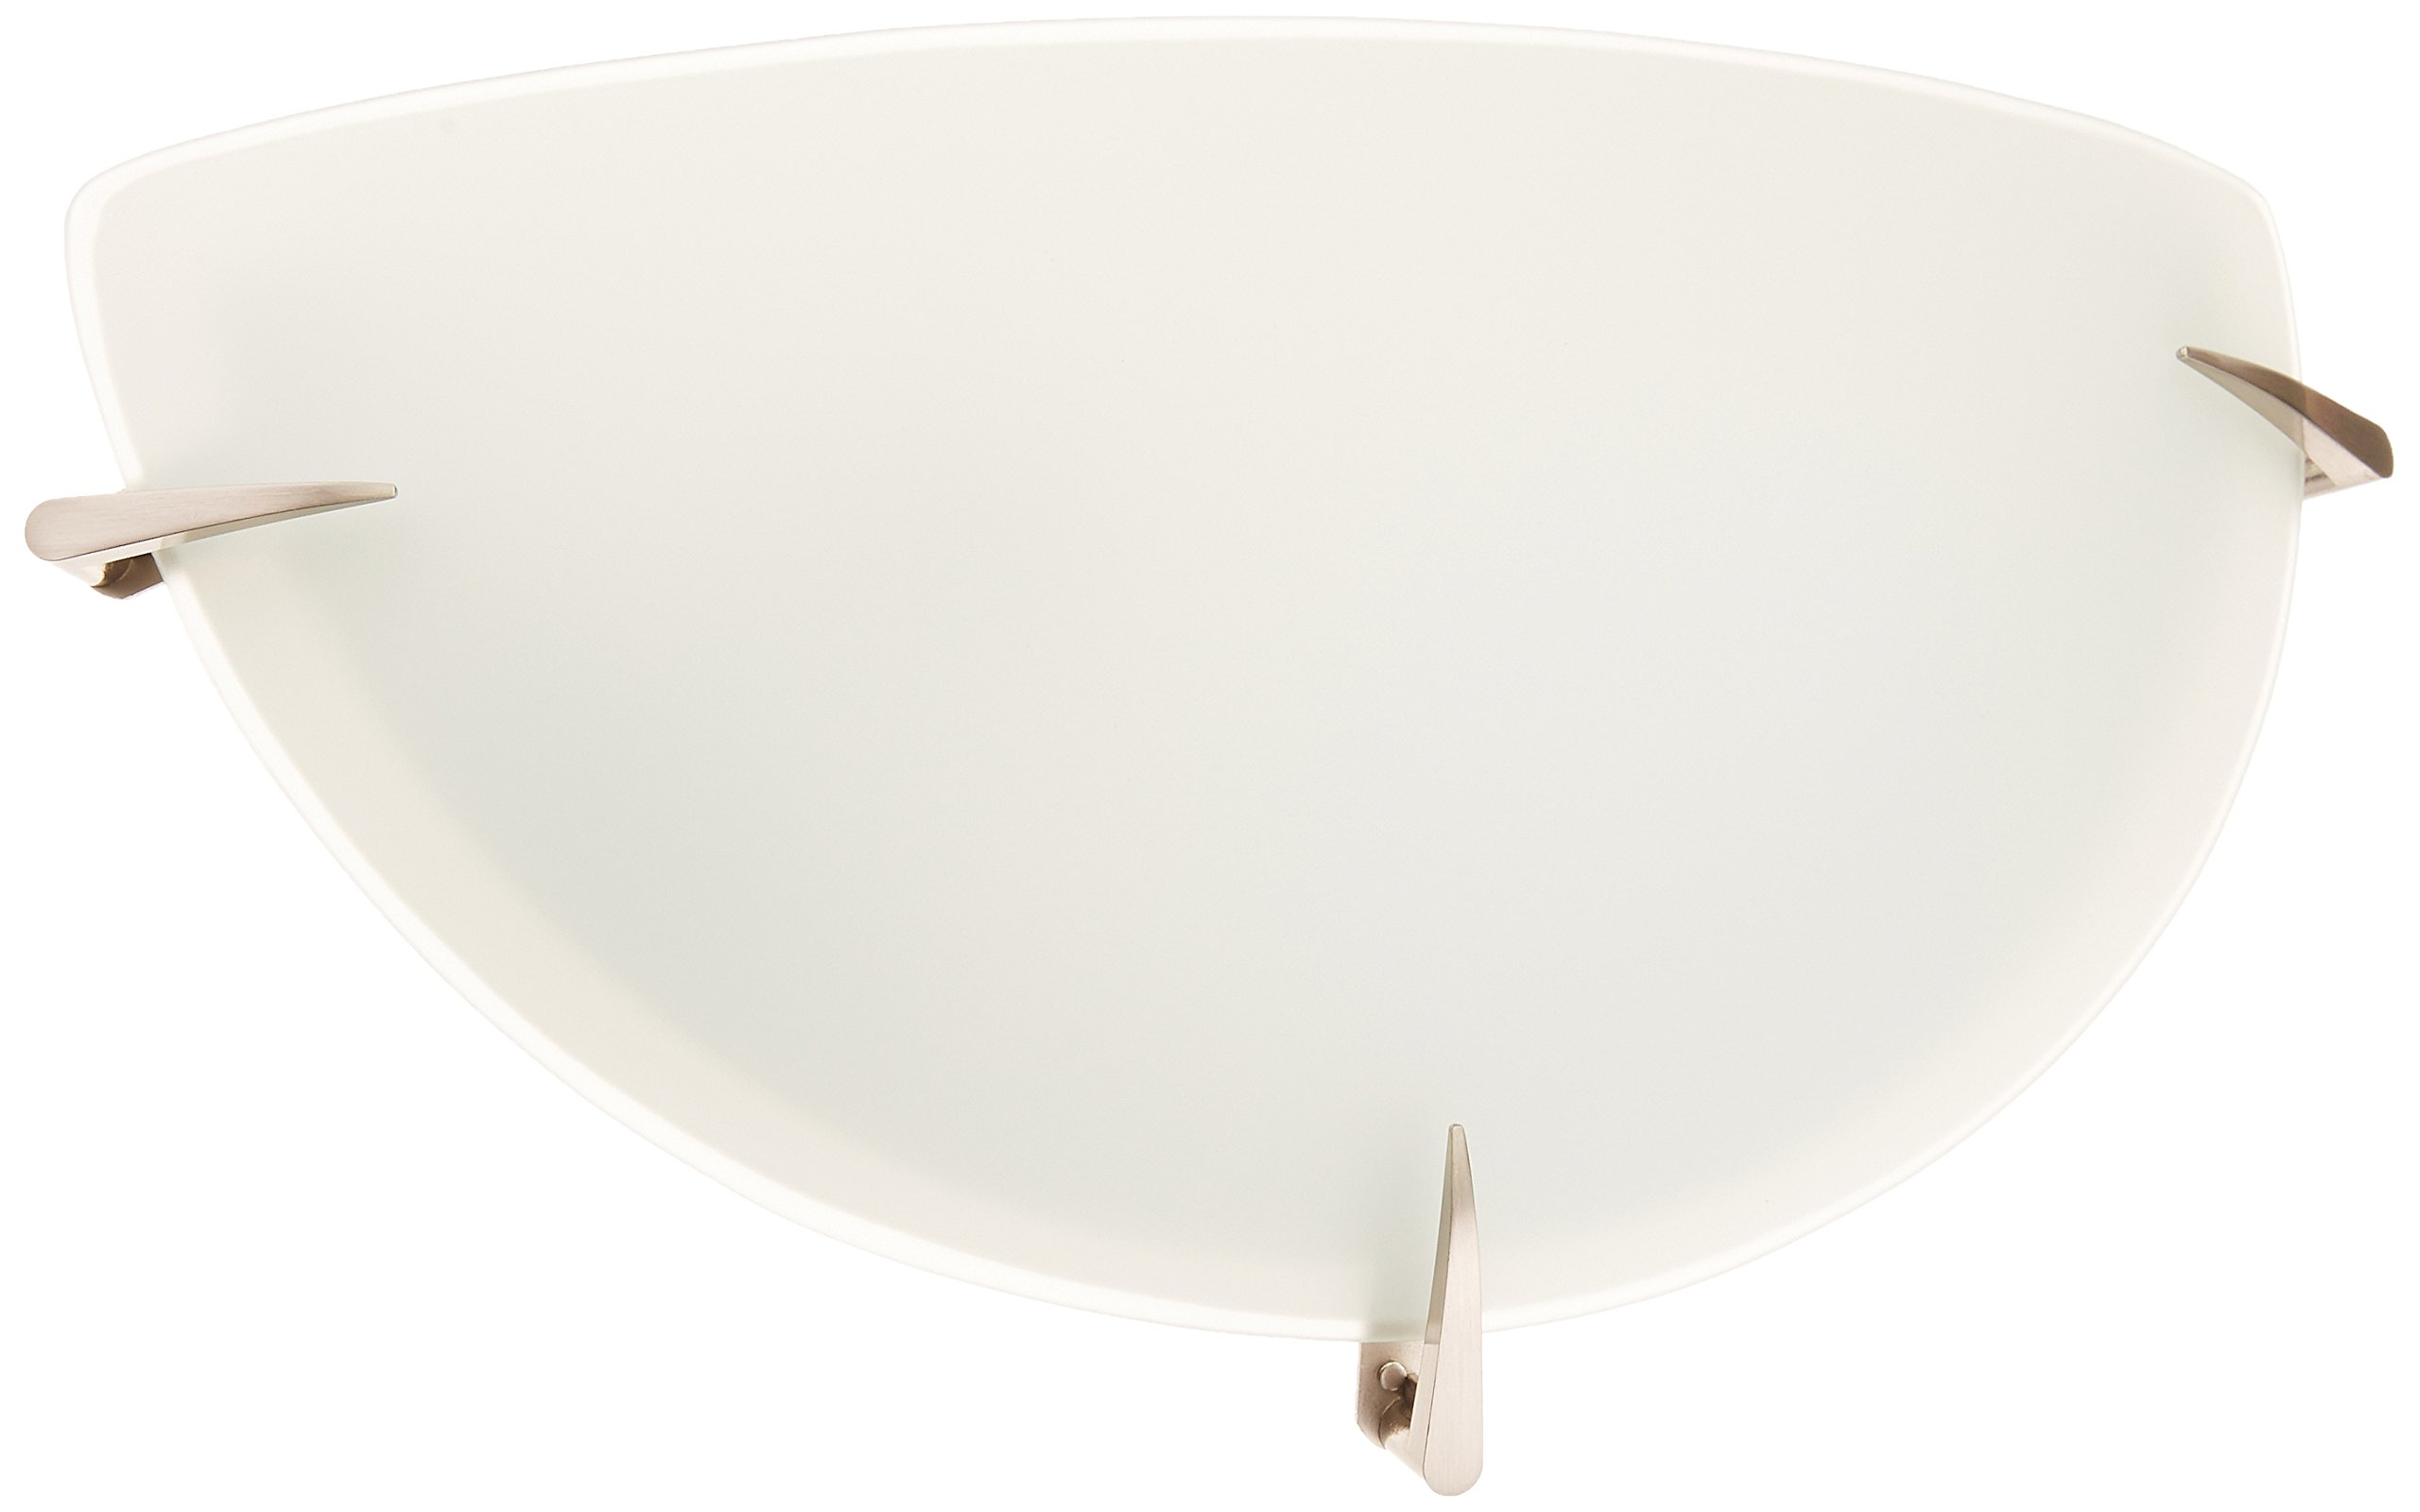 Lite Source LS-1338PS/FRO Wall Sconce with Frosted Glass Shades, Steel Finish